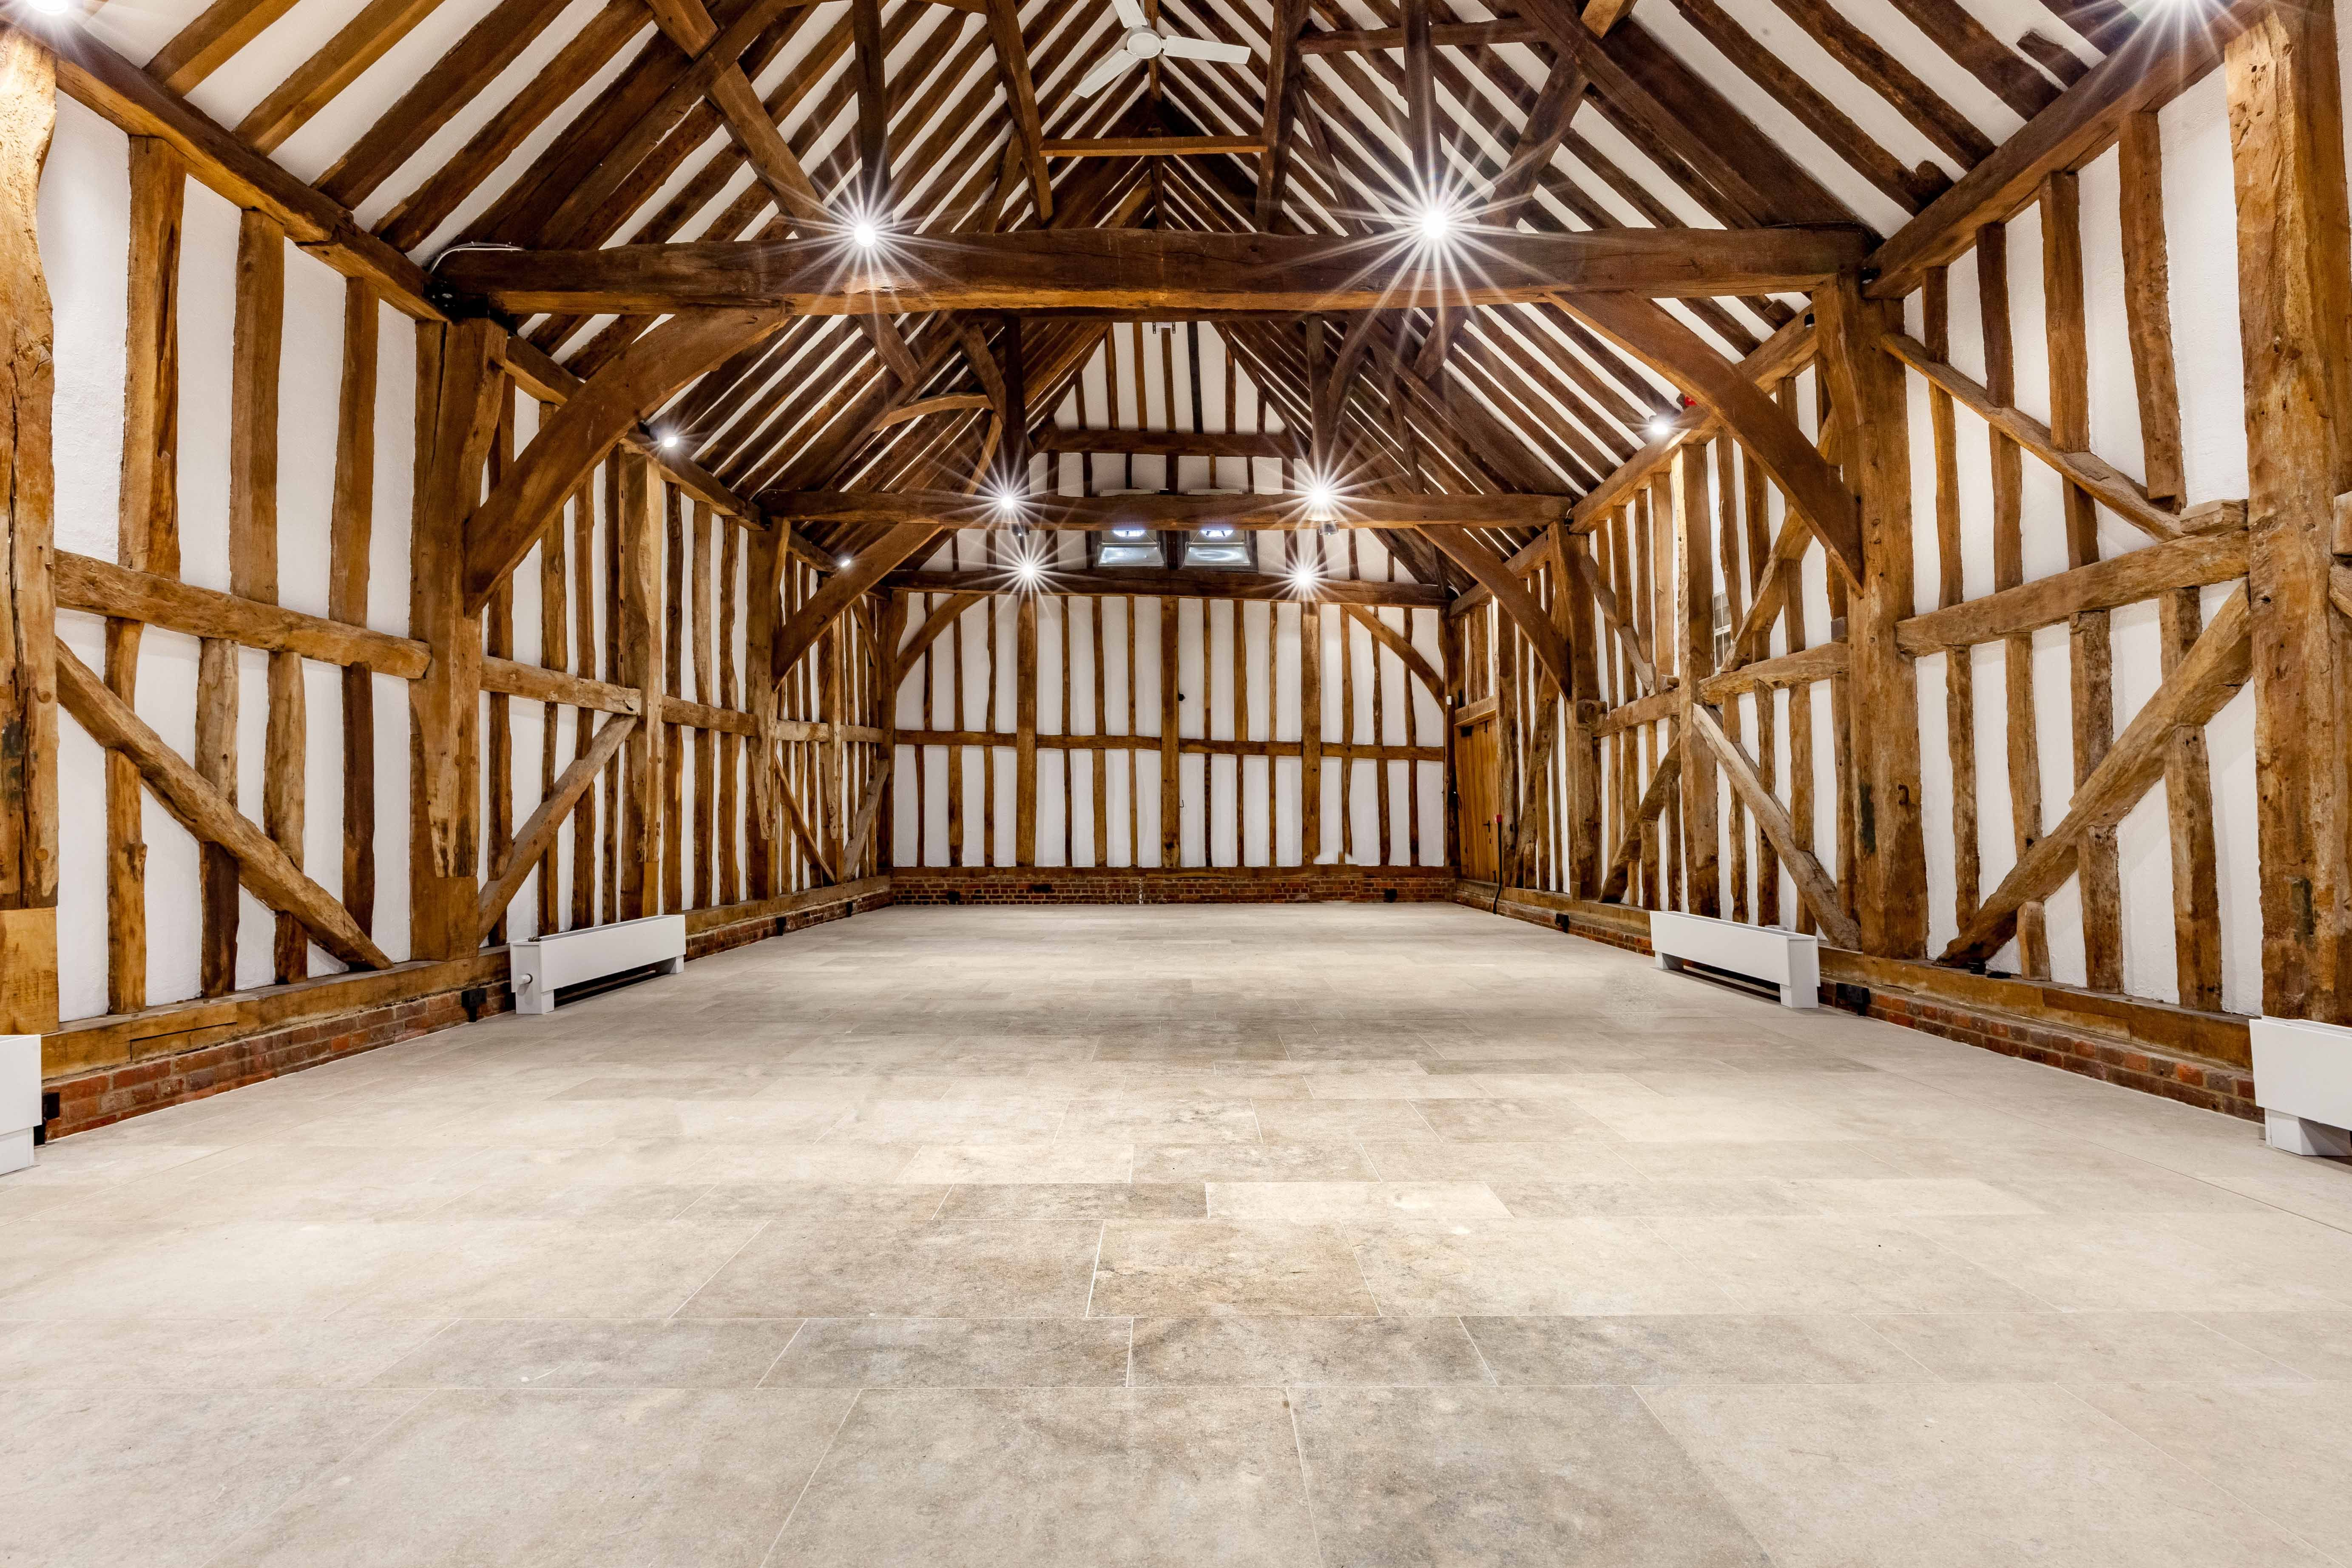 A Beautiful Wedding And Event Venue At Headstone Manor The Barn Features Natural Stone Floor Tiles From Solar Range Pinterest Stones